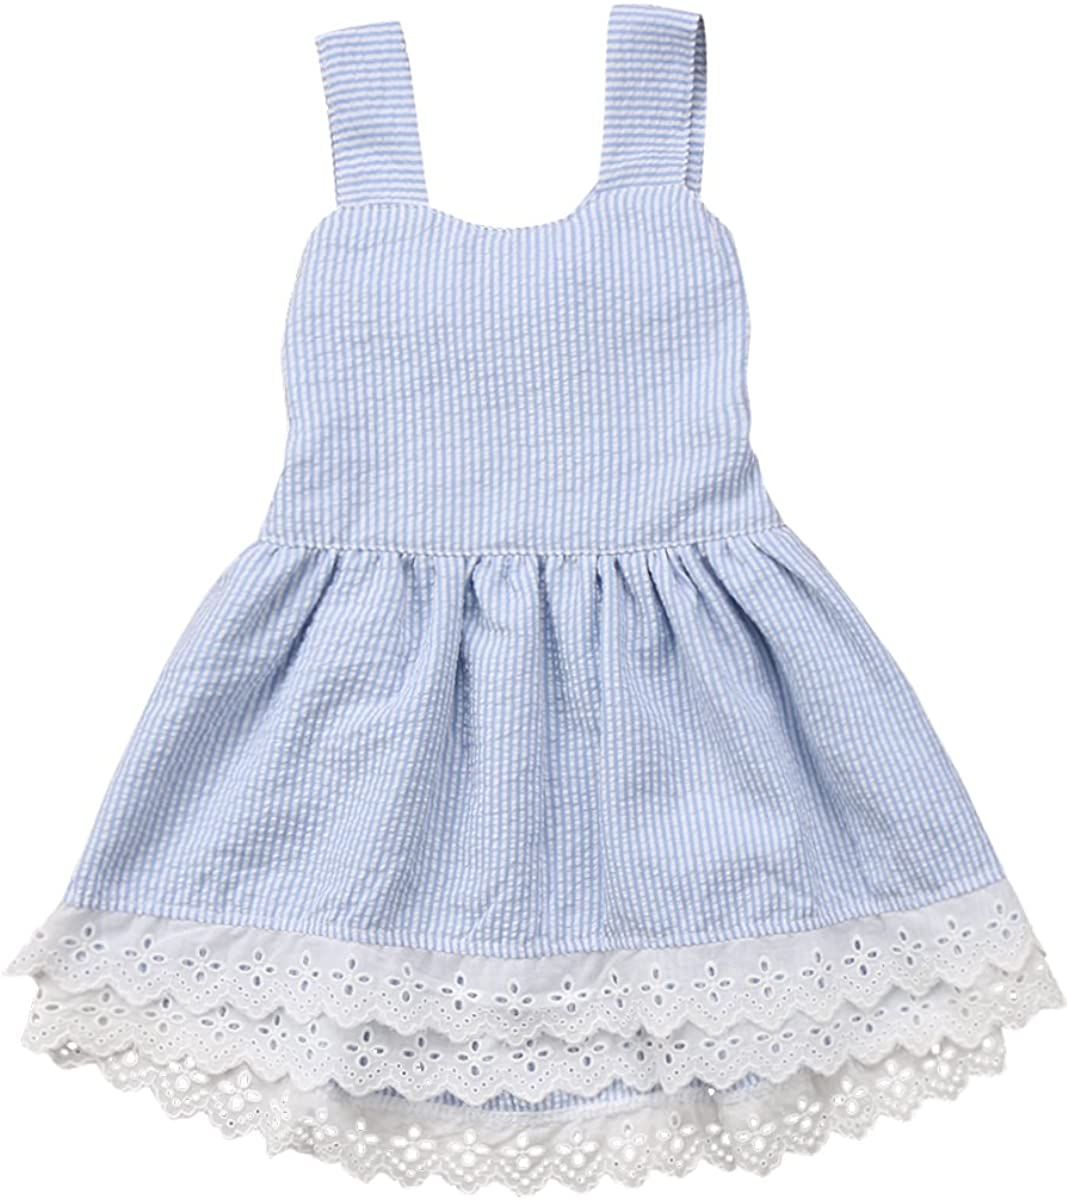 gllive Baby Girls Summer Dress Sleeveless Backless Blue Stripe Bow Lace Dresses Outfit